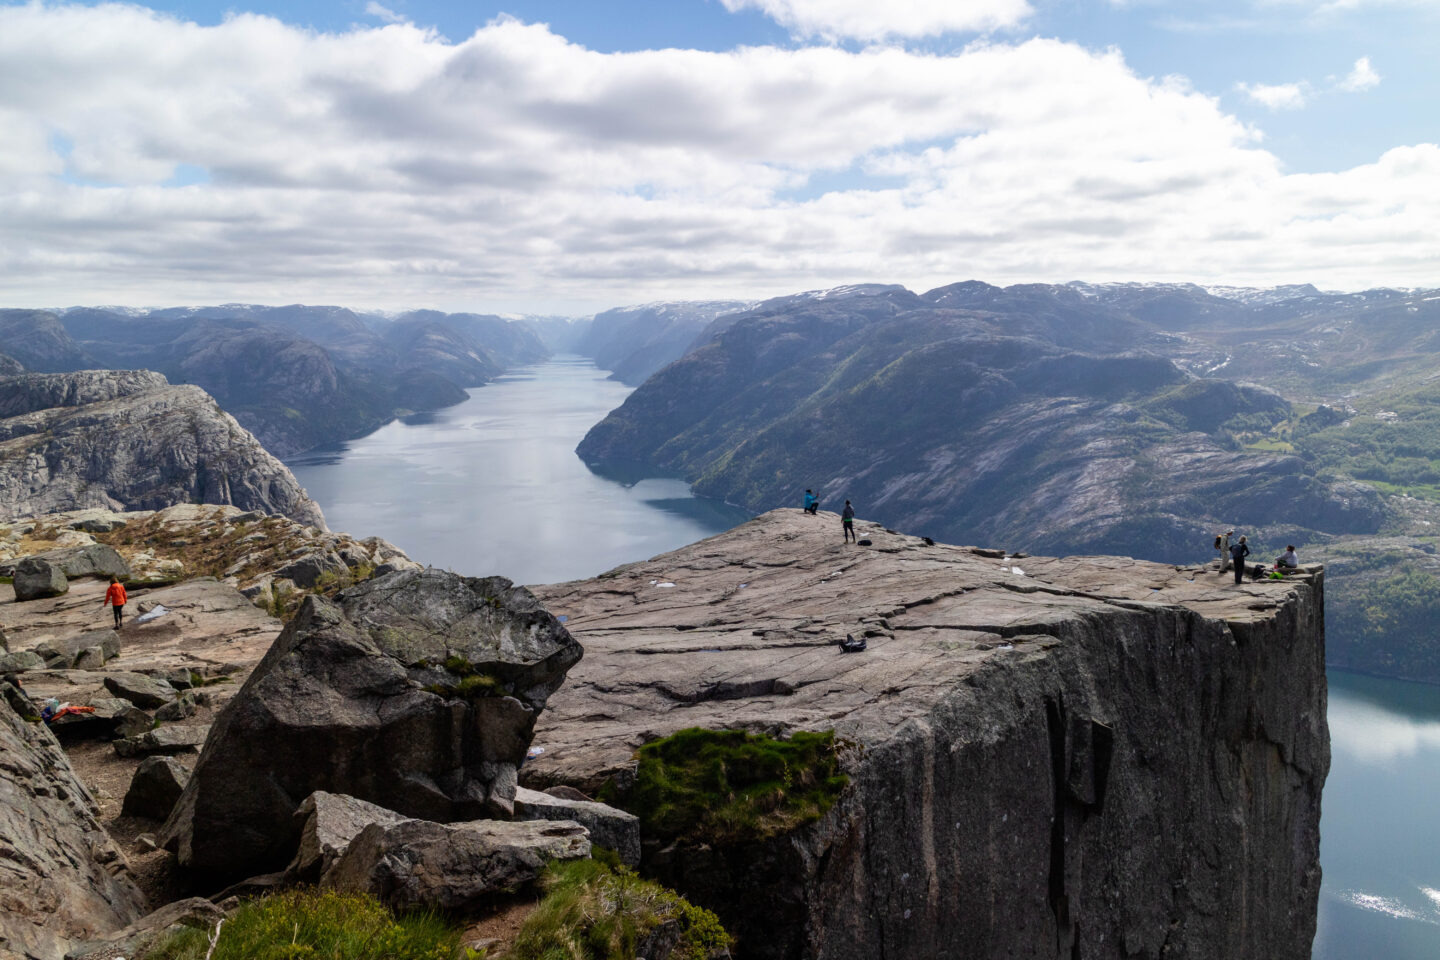 hiking pulpit rock, Norway view